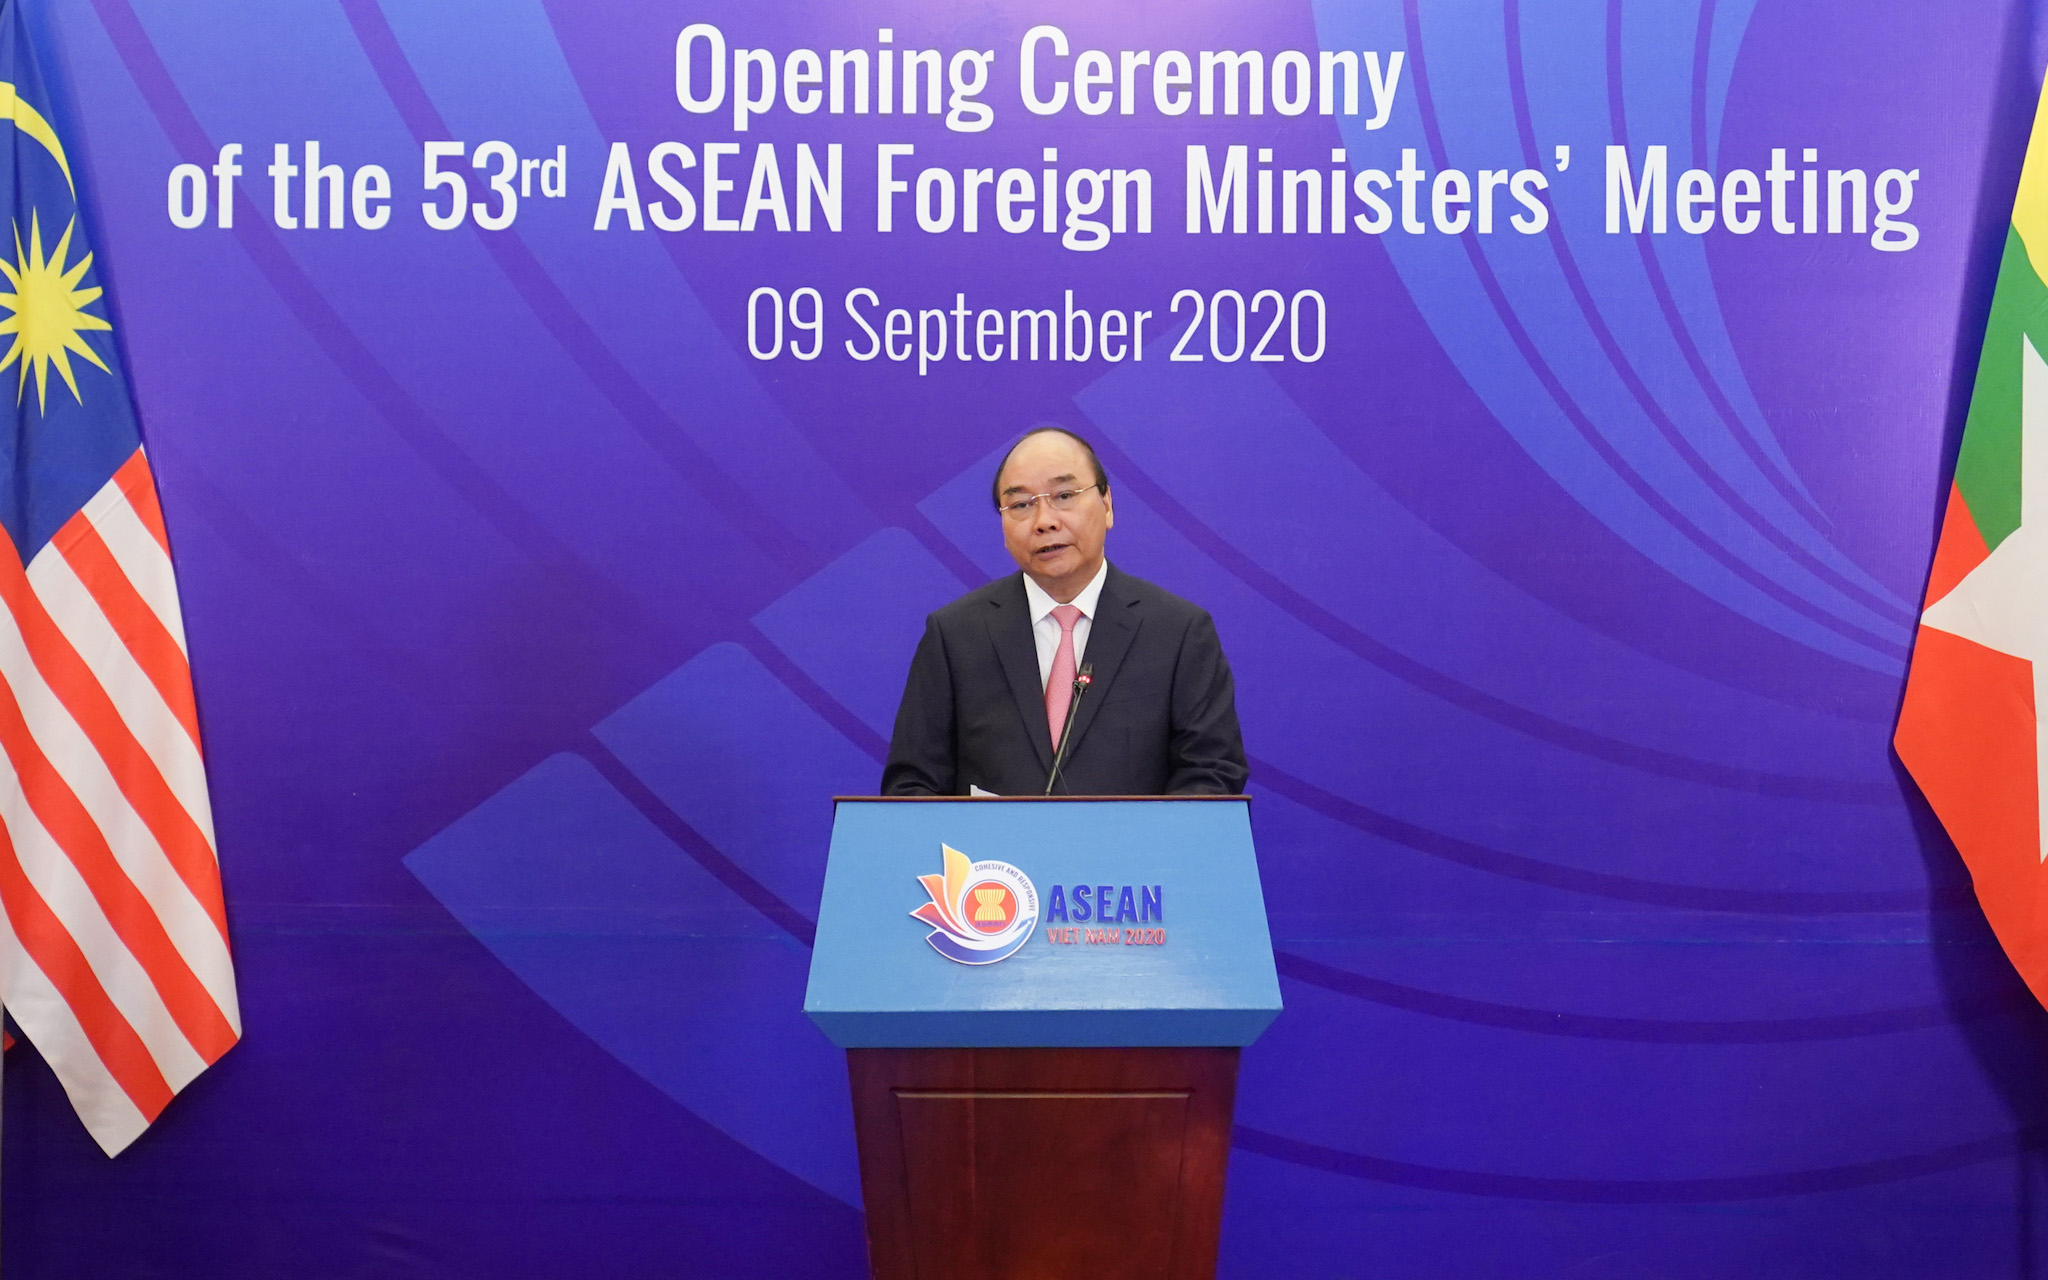 Efforts should be invested to control Covid-19 in ASEAN: Vietnam PM